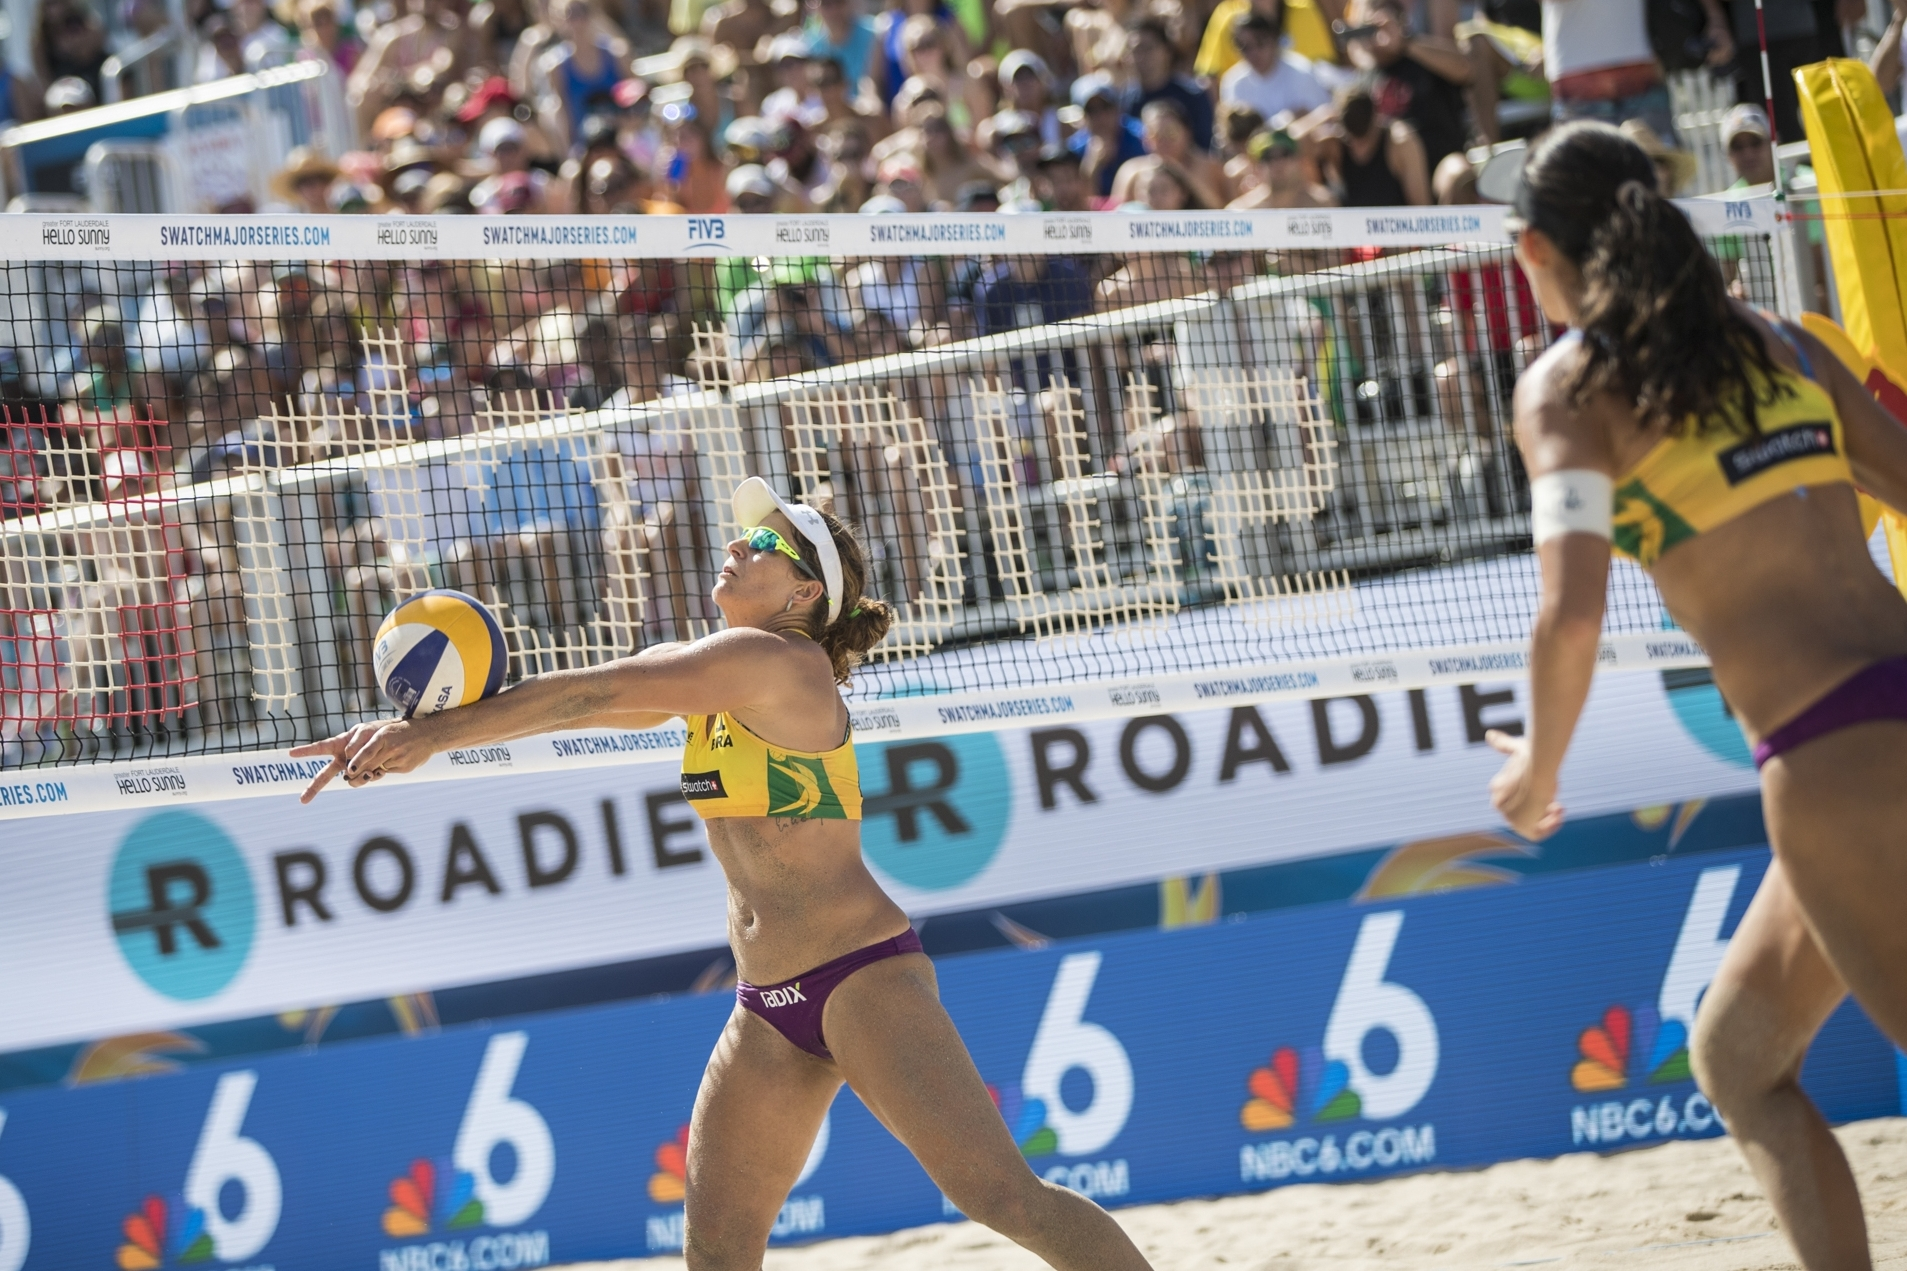 Larissa/Talita are in yet another final on Fort Lauderdale Beach